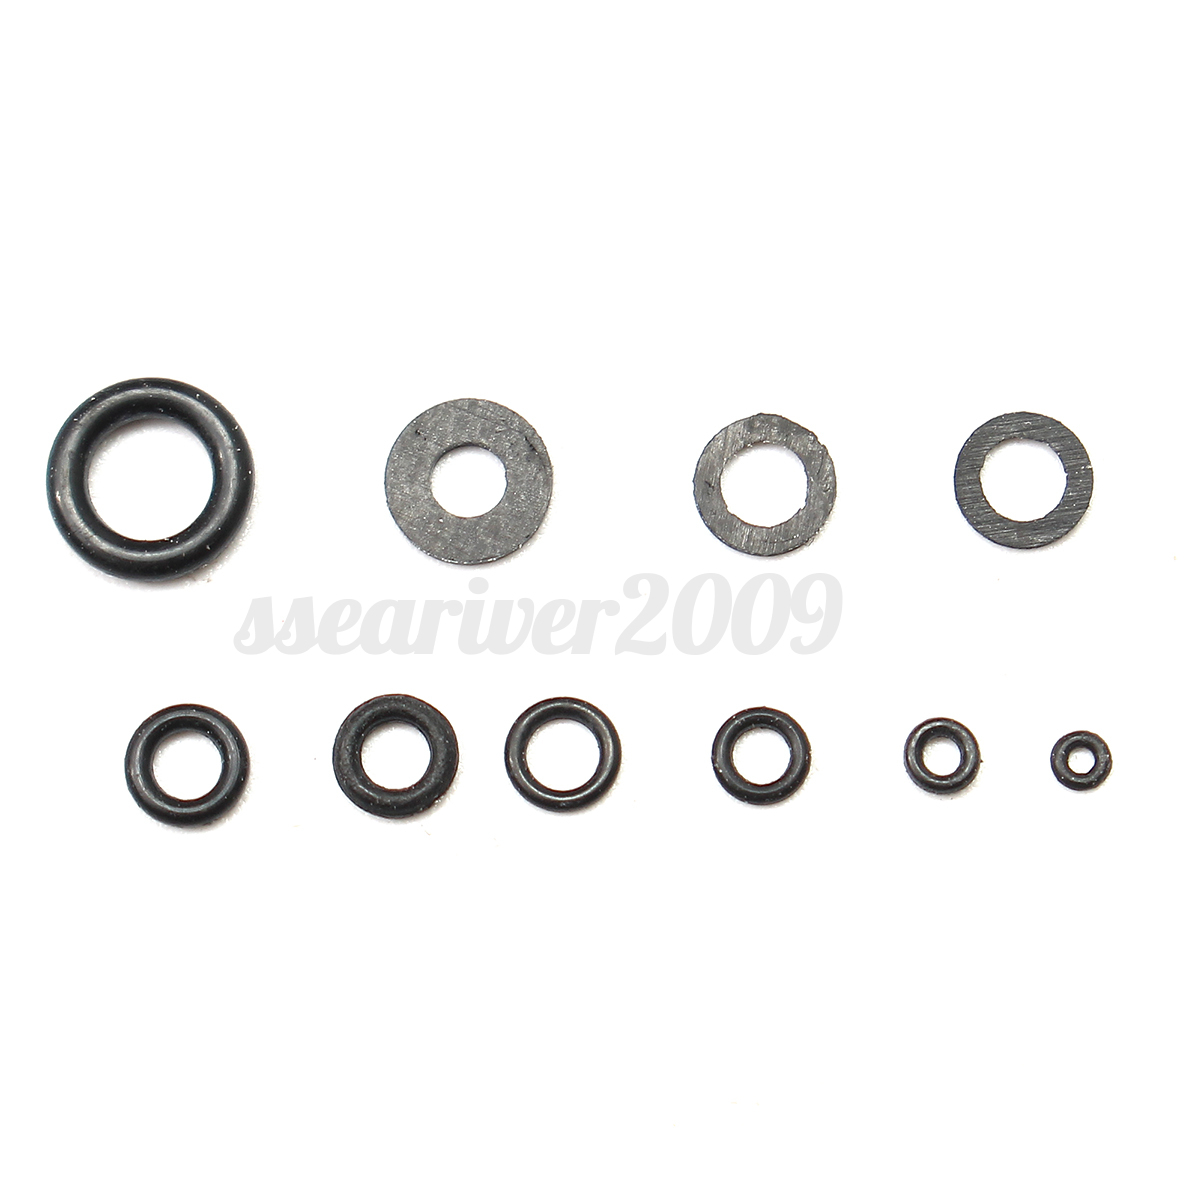 300pcs O Ring Watch Tool Flat Rubber Seal Washers 1 4 2 8mm 10 Size Assortment